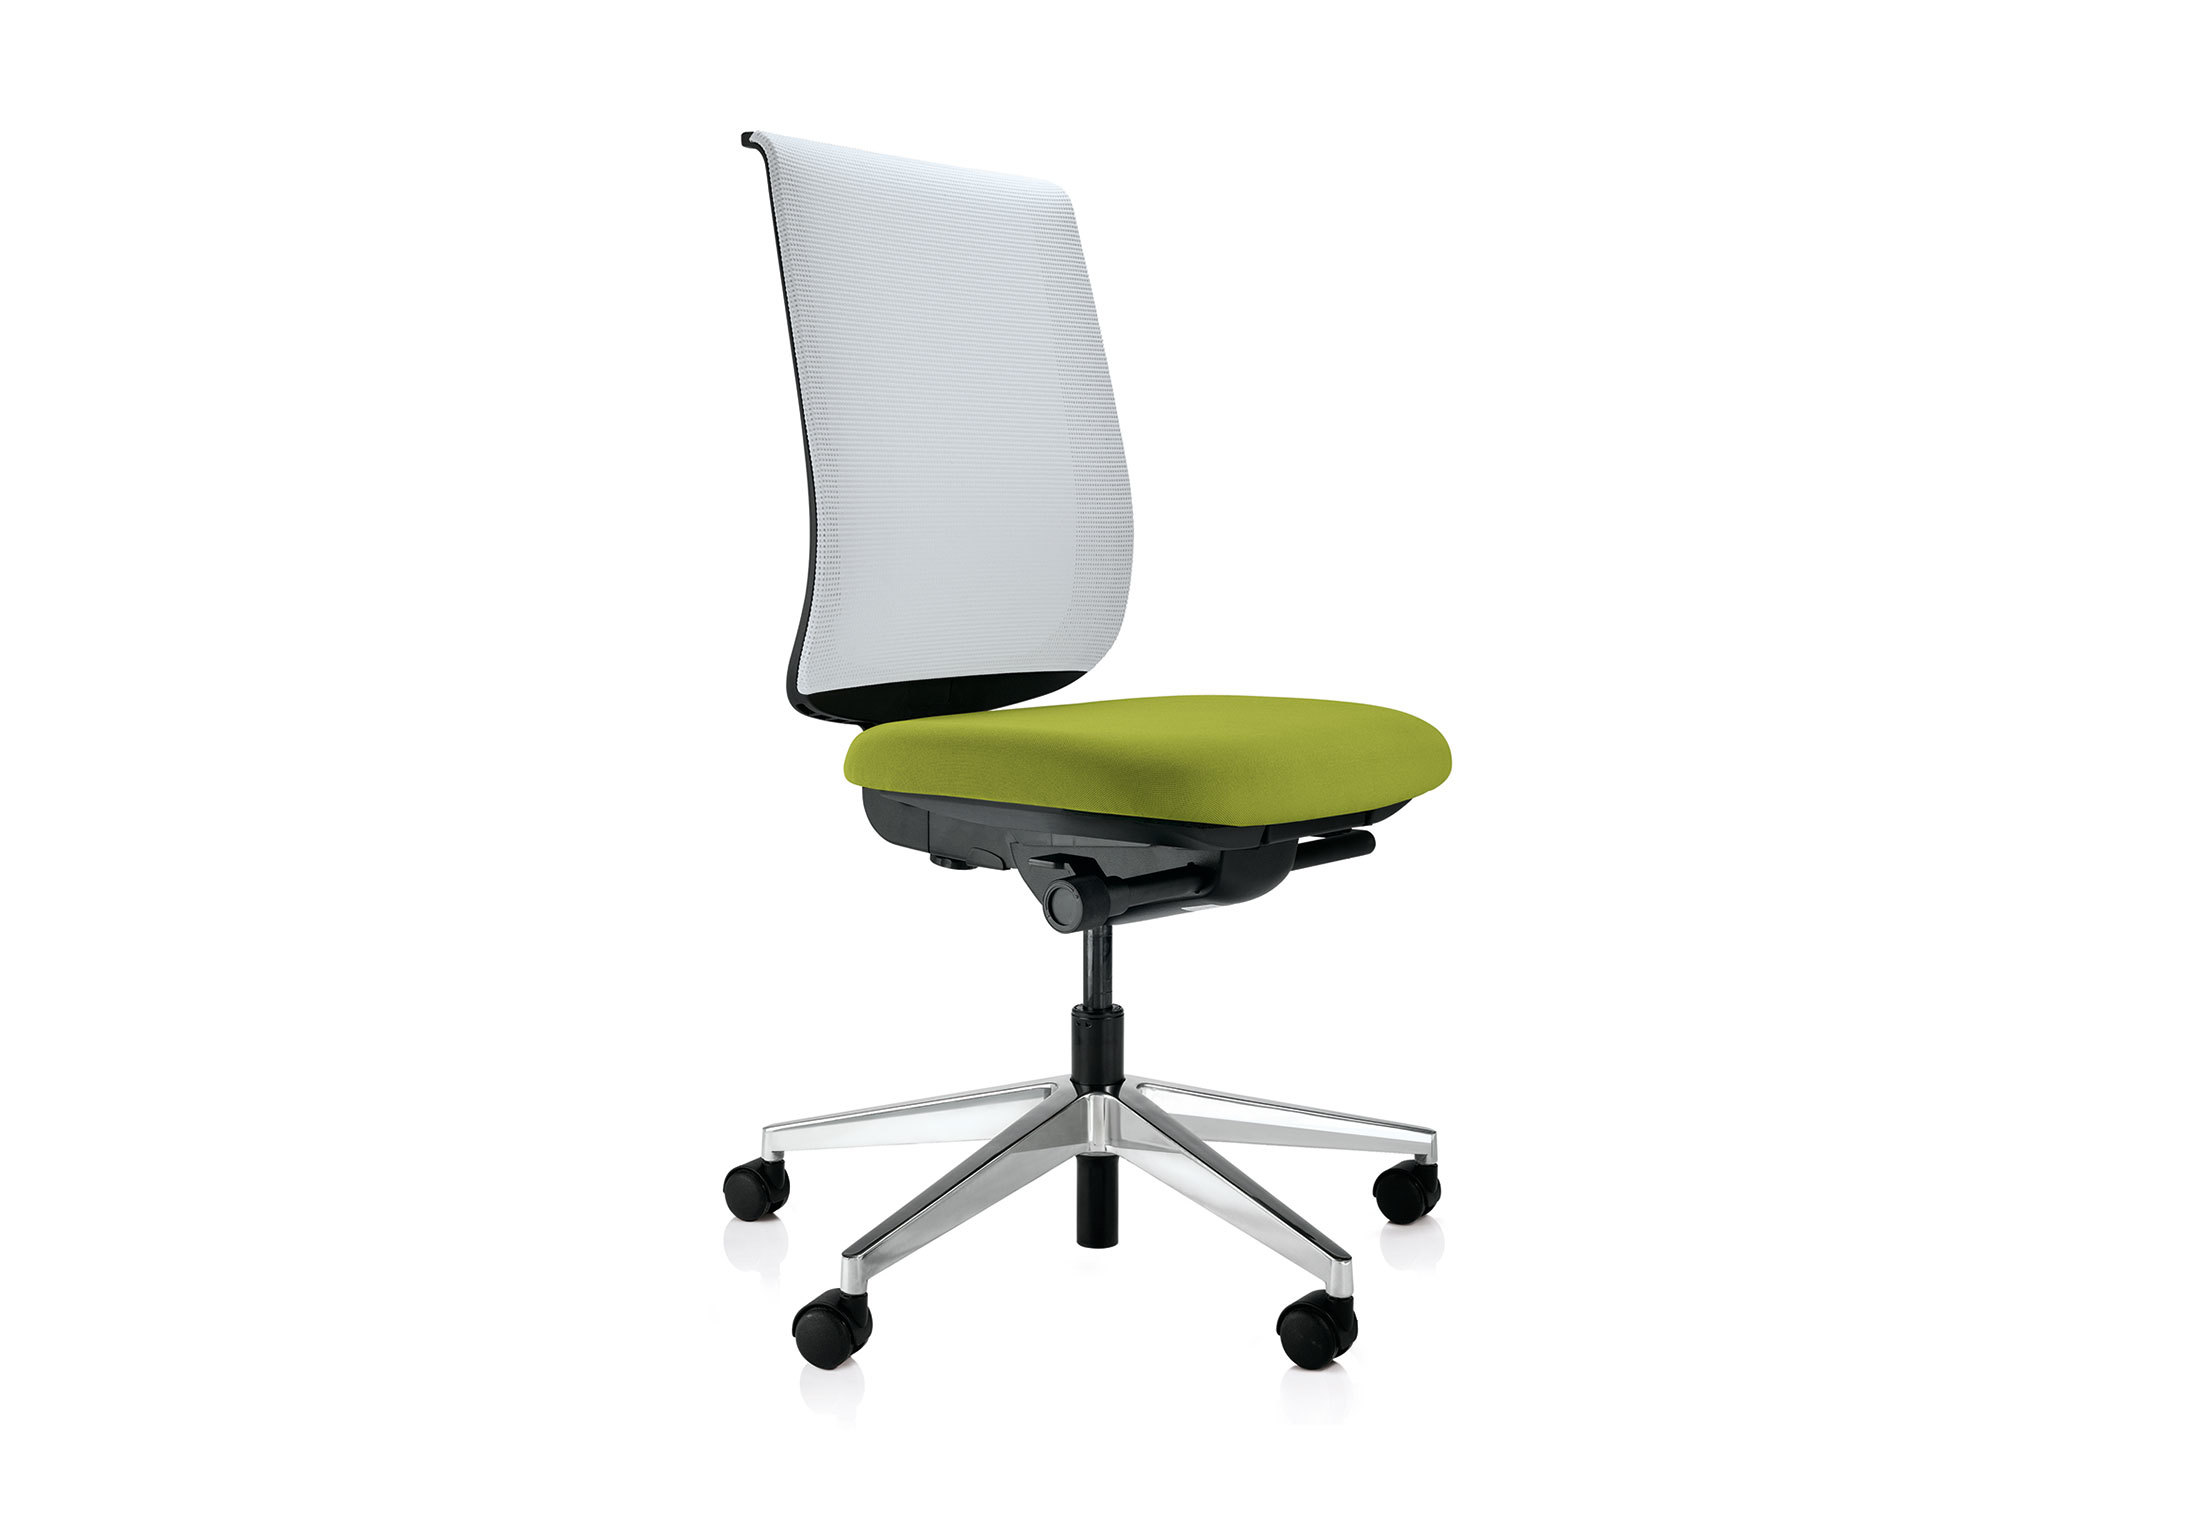 sc 1 st  Stylepark & Reply by Steelcase | STYLEPARK